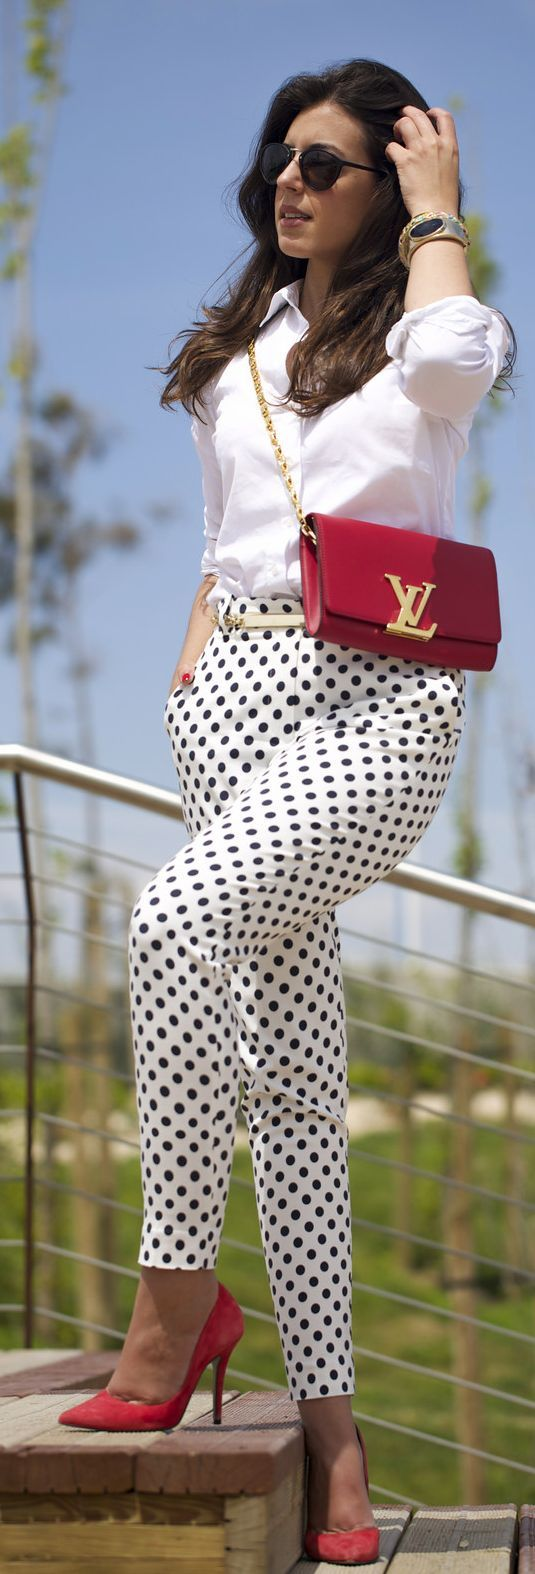 Polka Dot Pants Chic Streetstyle                                                                             Source